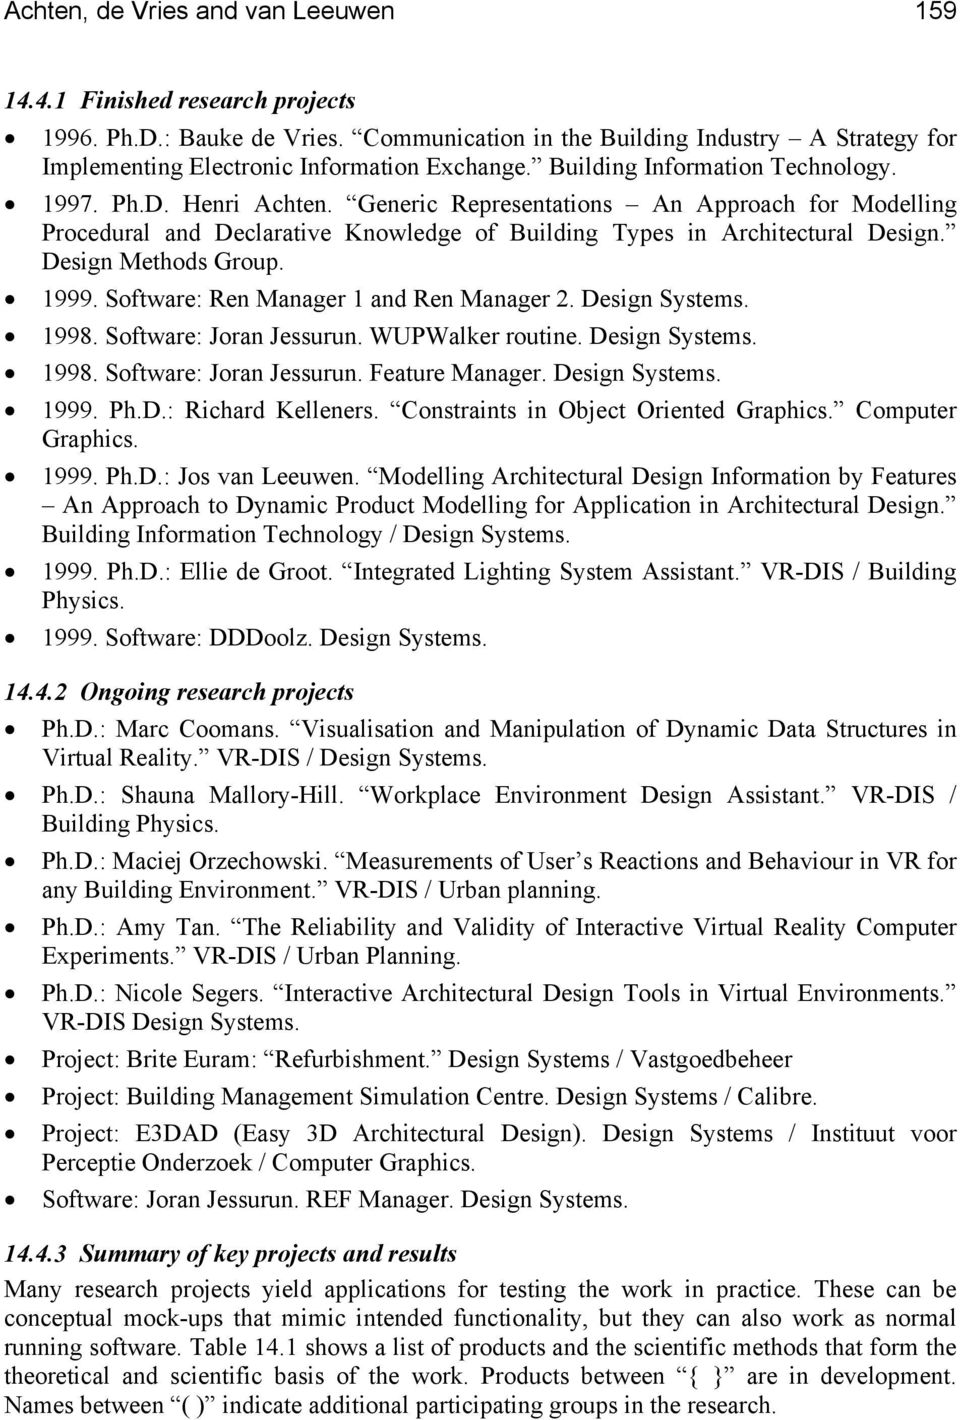 Design Methods Group. 1999. Software: Ren Manager 1 and Ren Manager 2. Design Systems. 1998. Software: Joran Jessurun. WUPWalker routine. Design Systems. 1998. Software: Joran Jessurun. Feature Manager.